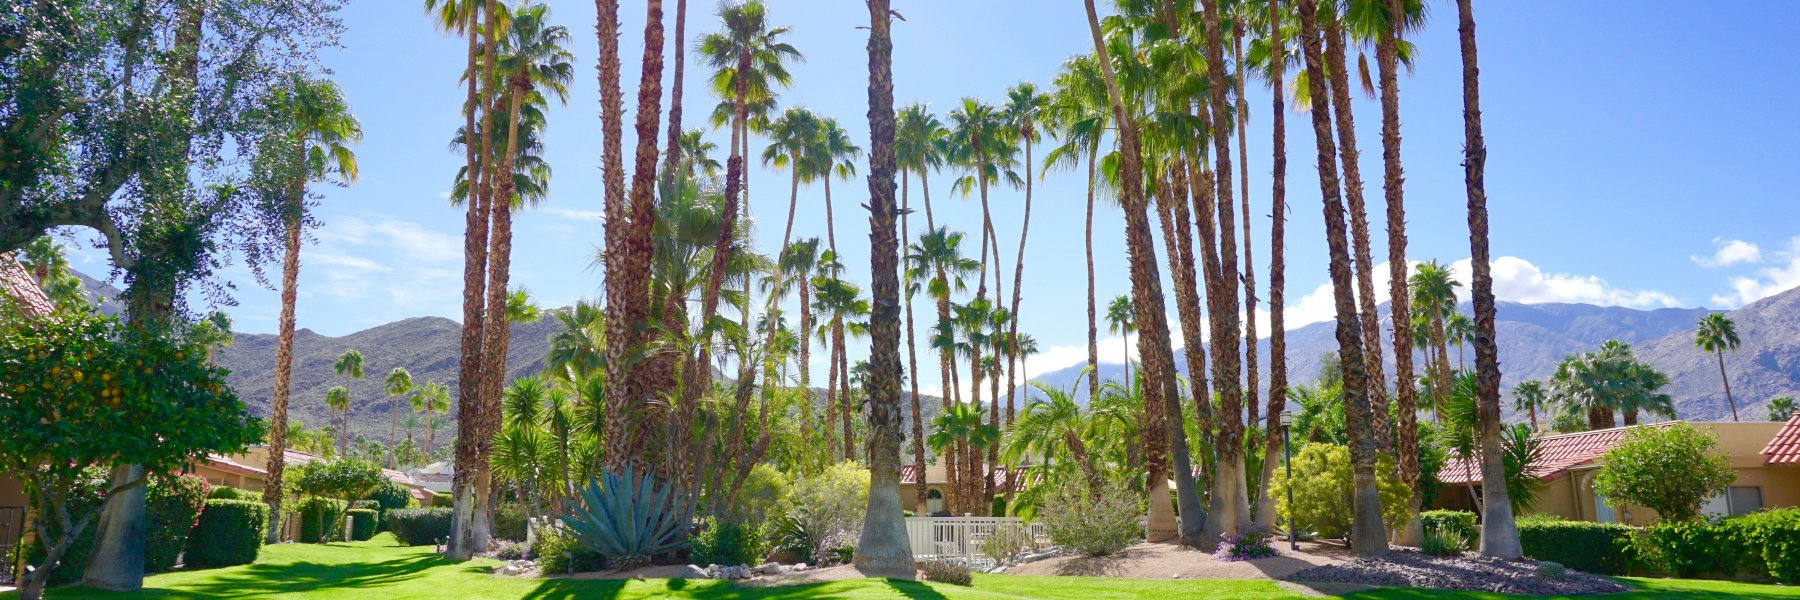 Andreas Hills is a community of homes in Palm Springs California